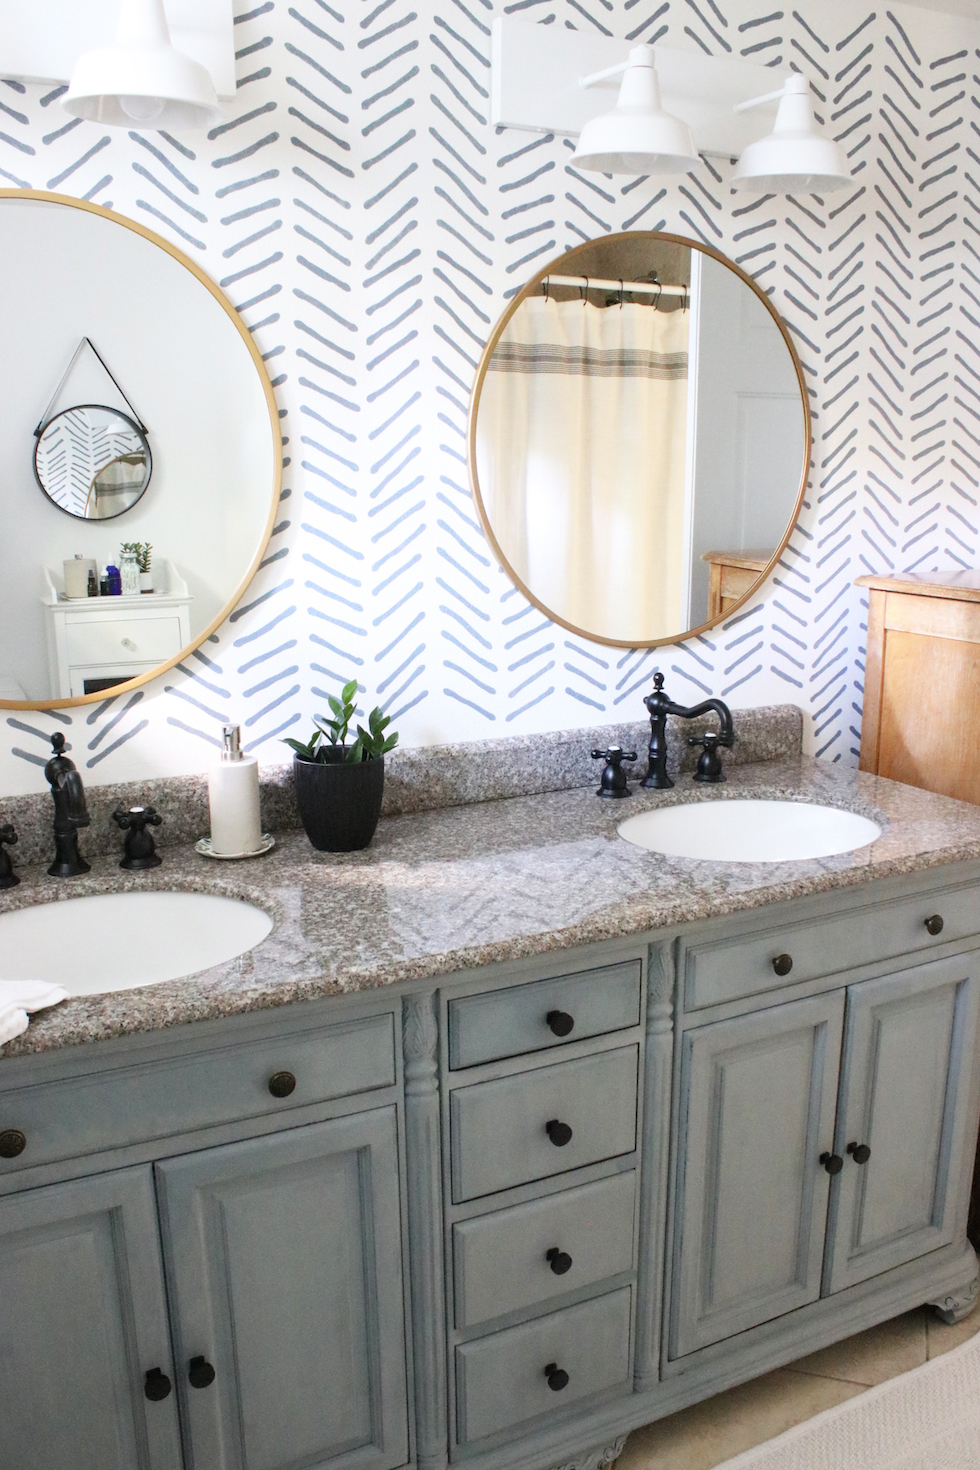 Our bathroom renovation: painted vanity and wall stencil details